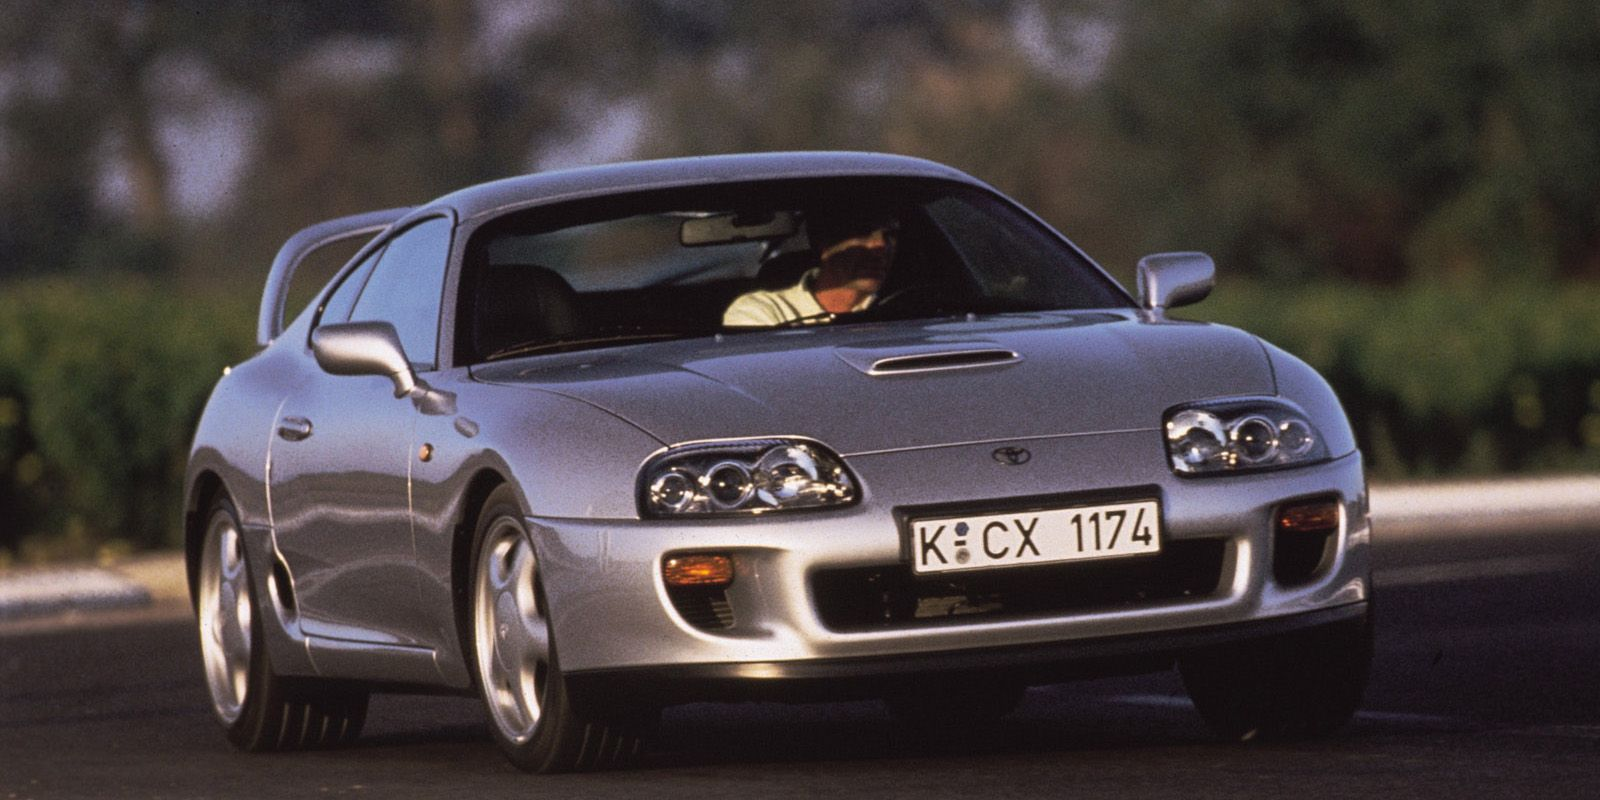 """<p>You can't have a proper automotive resurrection conversation without bringing up the Toyota Supra. It was basically Japan's muscle car, fitted with a cast-iron cylinder block that made it very tunable and a favorite among the JDM crowd. Finding a stock Supra these days is a rare thing. Toyota has <a href=""""http://www.roadandtrack.com/car-shows/detroit-auto-show/news/a6682/toyota-ft1-concept/"""">teased us with the FT-1 Concept</a>, the supposed Supra successor, but nothing has come of the design plans save for concepts. Yet.</p>"""